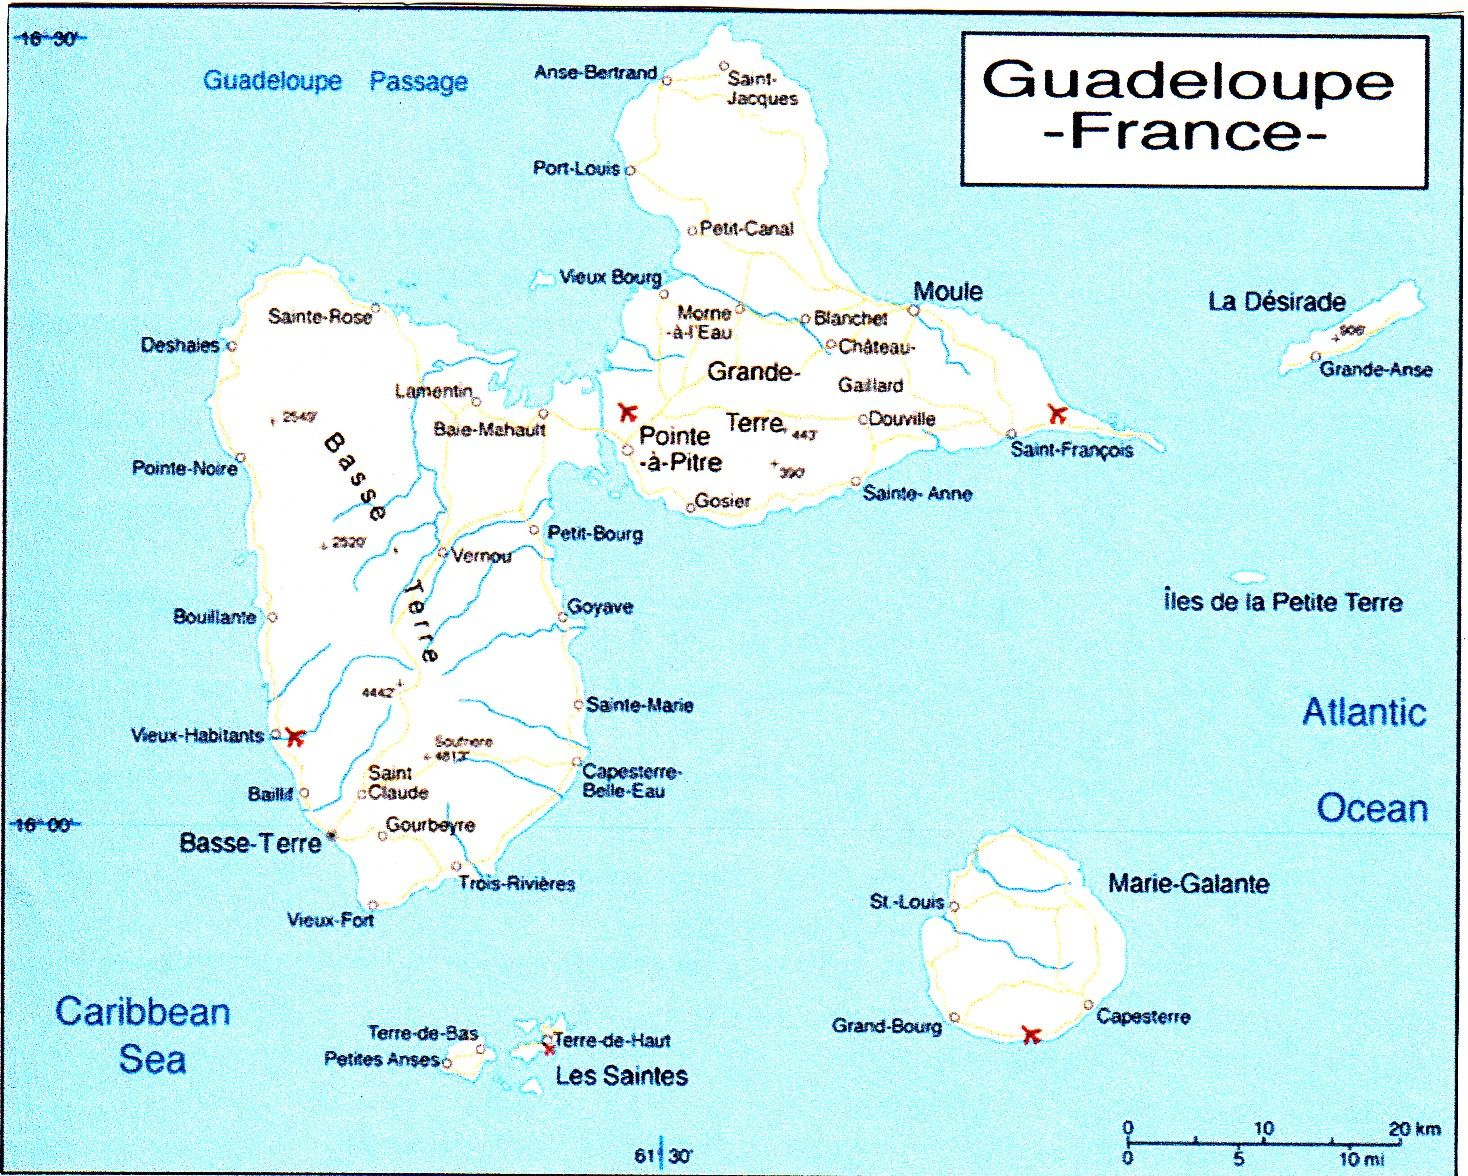 Les Saintes Island Guadeloupe TO6A Map